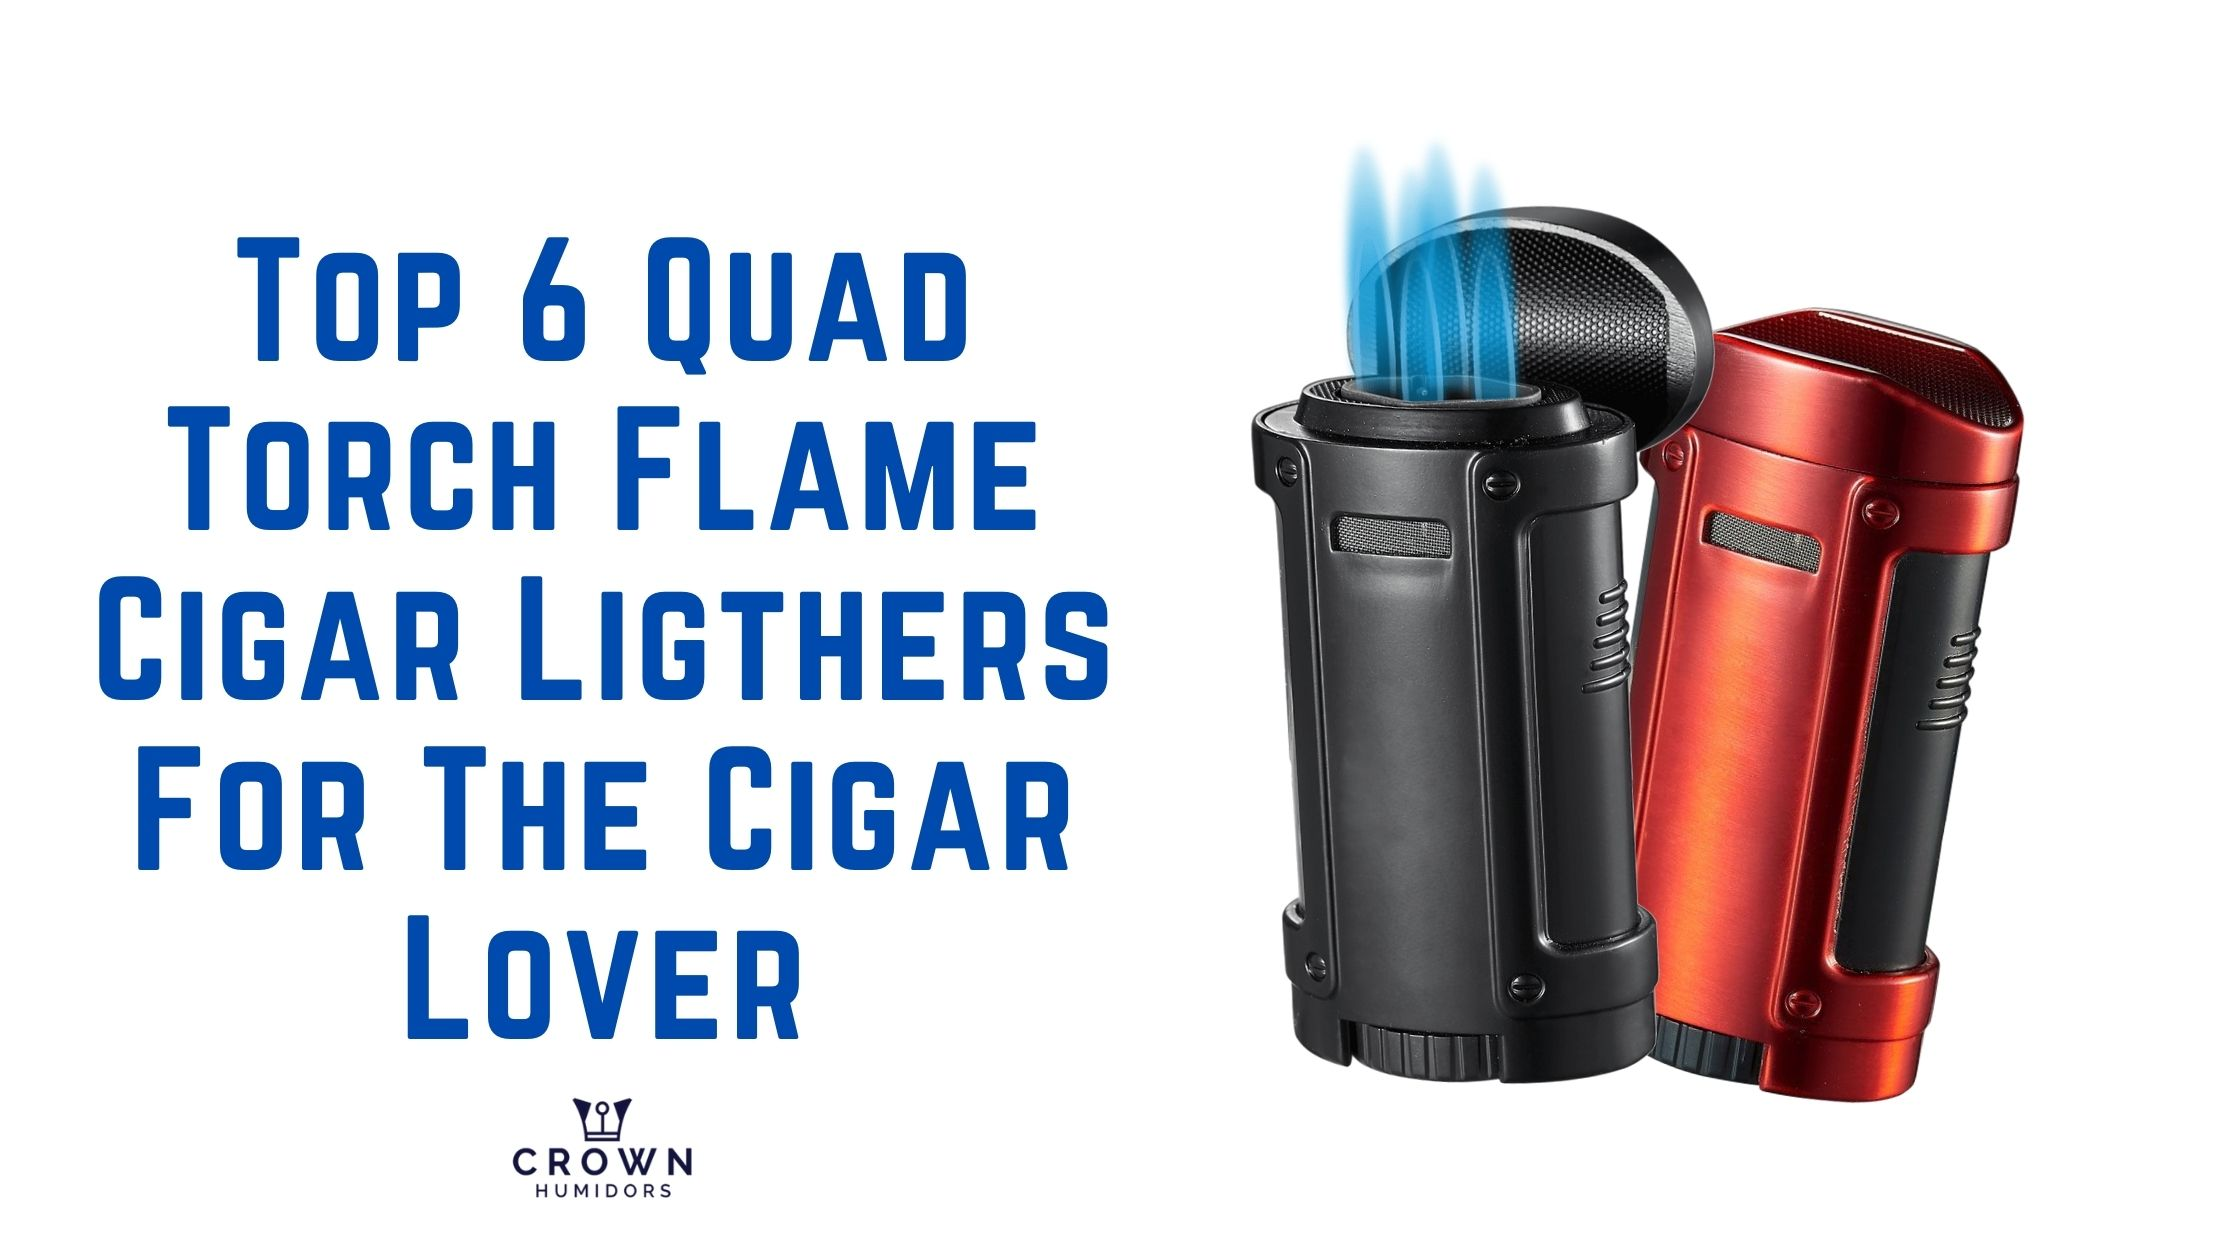 Top 6 QUAD TORCH FLAME CIGAR LIGHTERs FOR the CIGAR LOVER